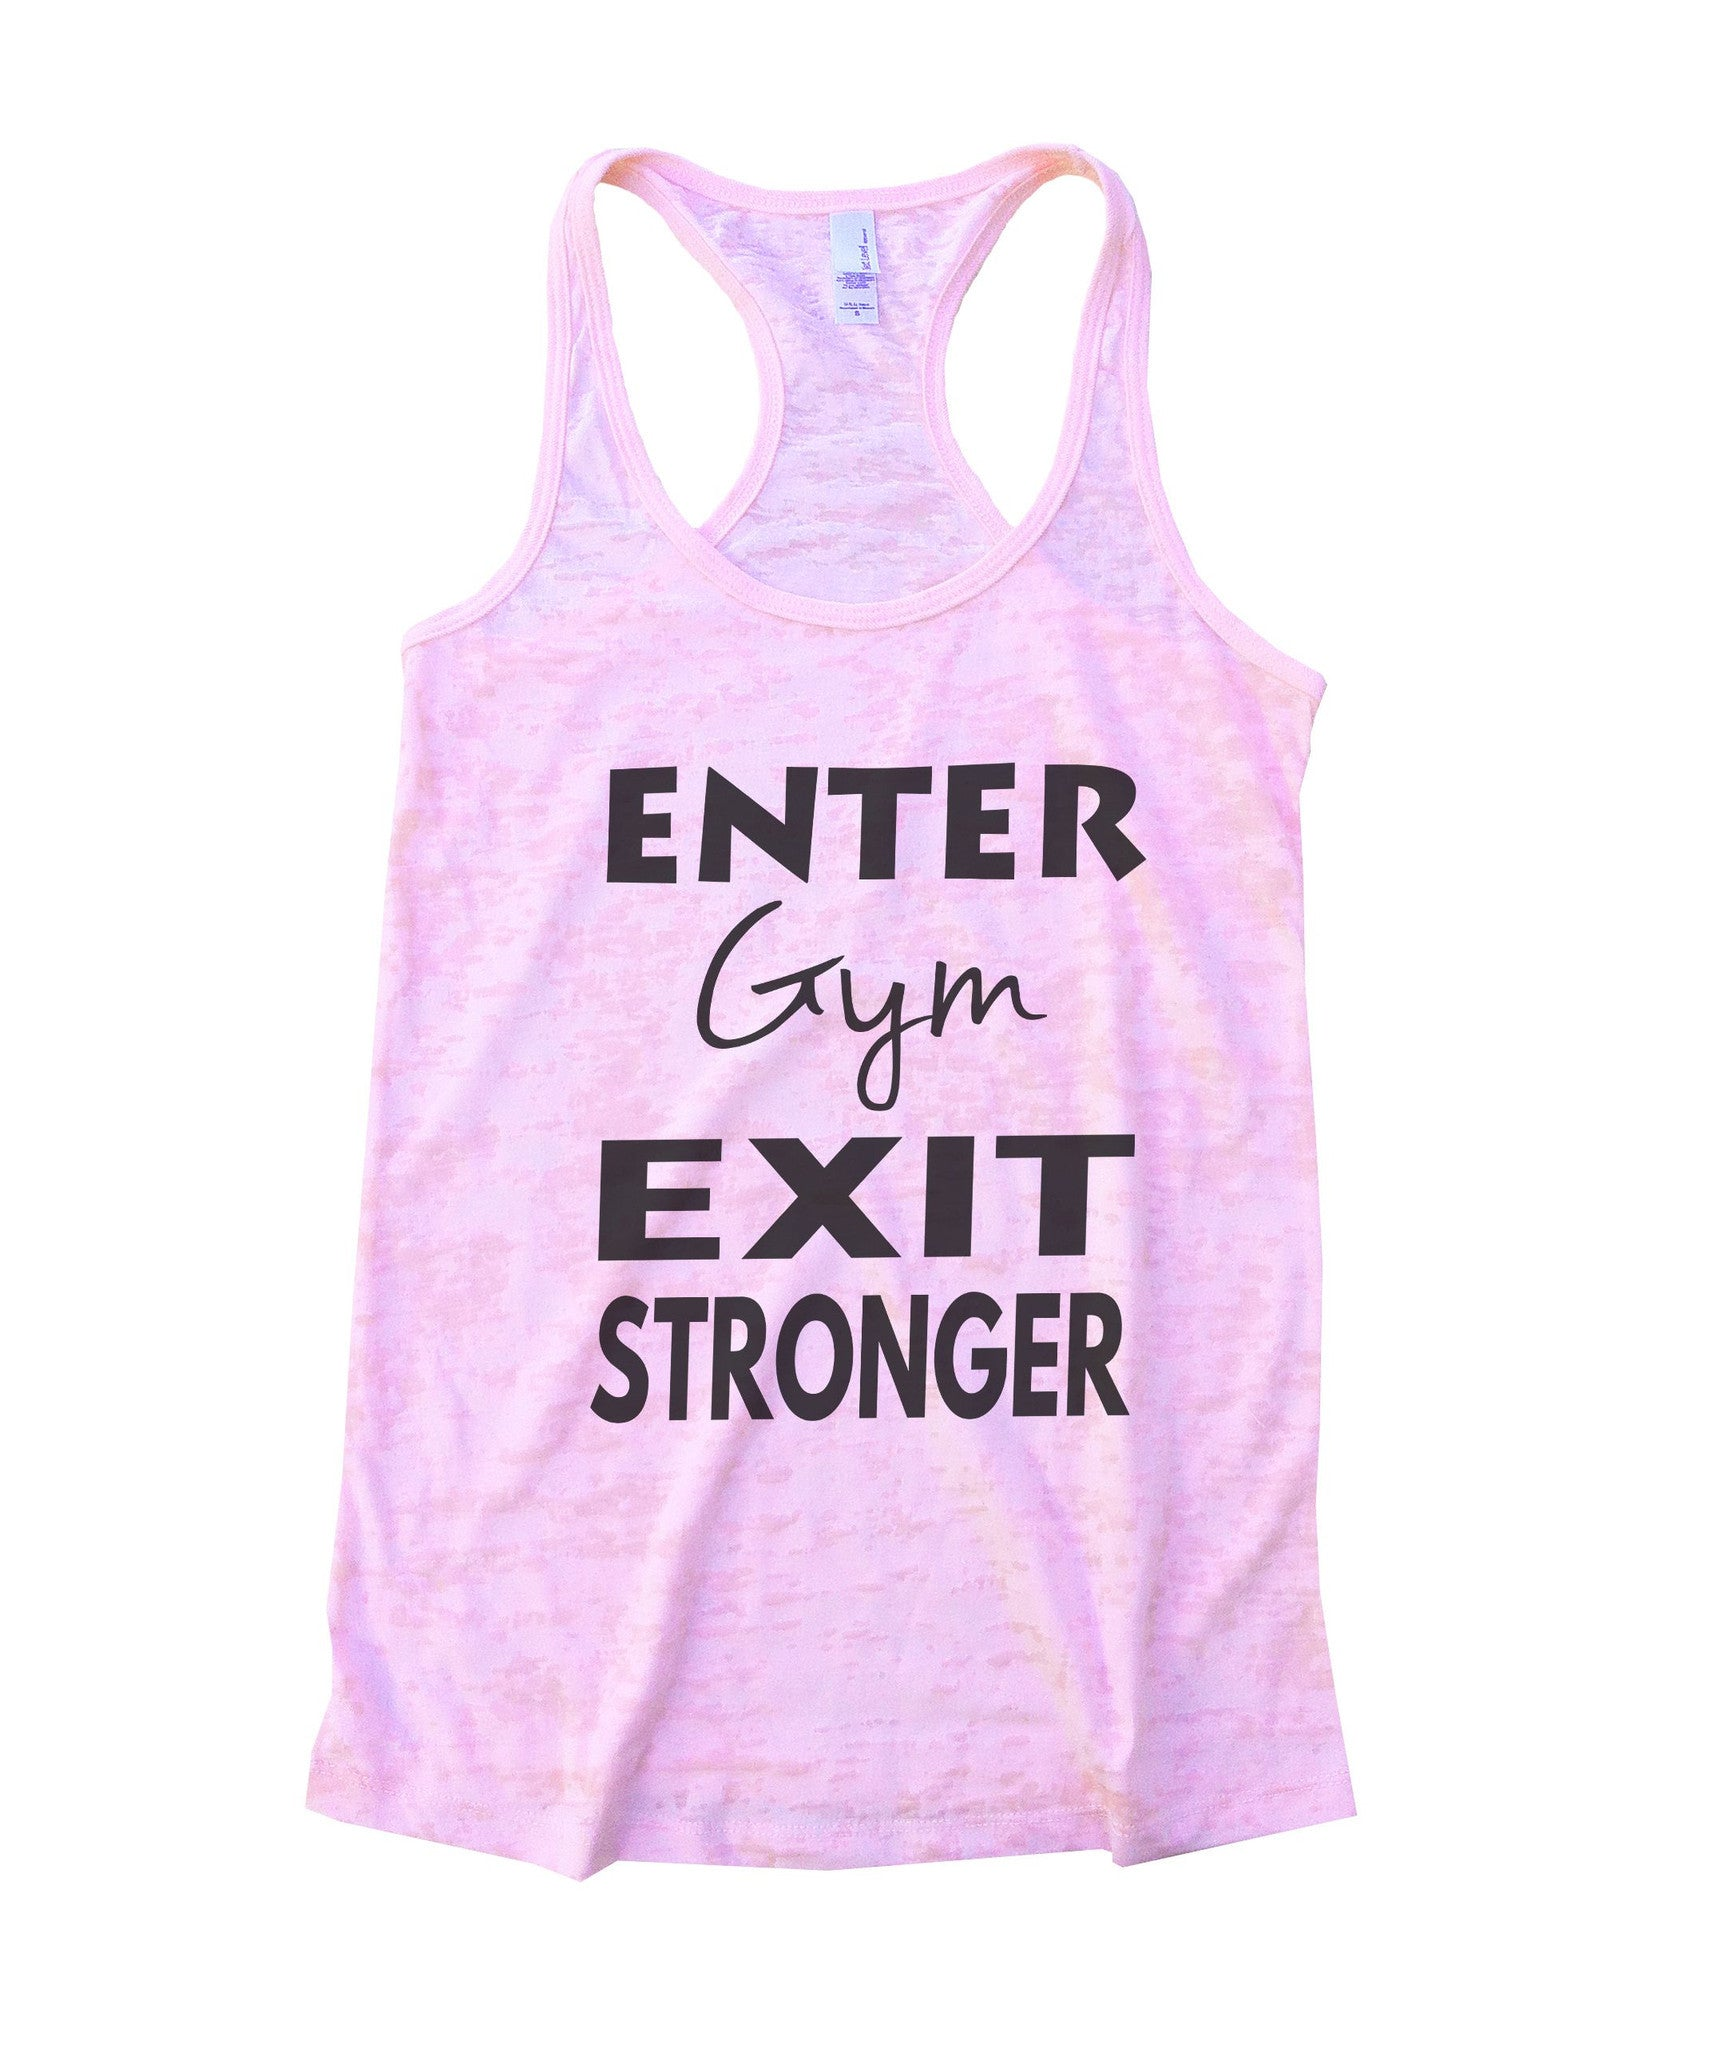 Enter Gym Exit Stronger Burnout Tank Top By BurnoutTankTops.com - 853 - Funny Shirts Tank Tops Burnouts and Triblends  - 1